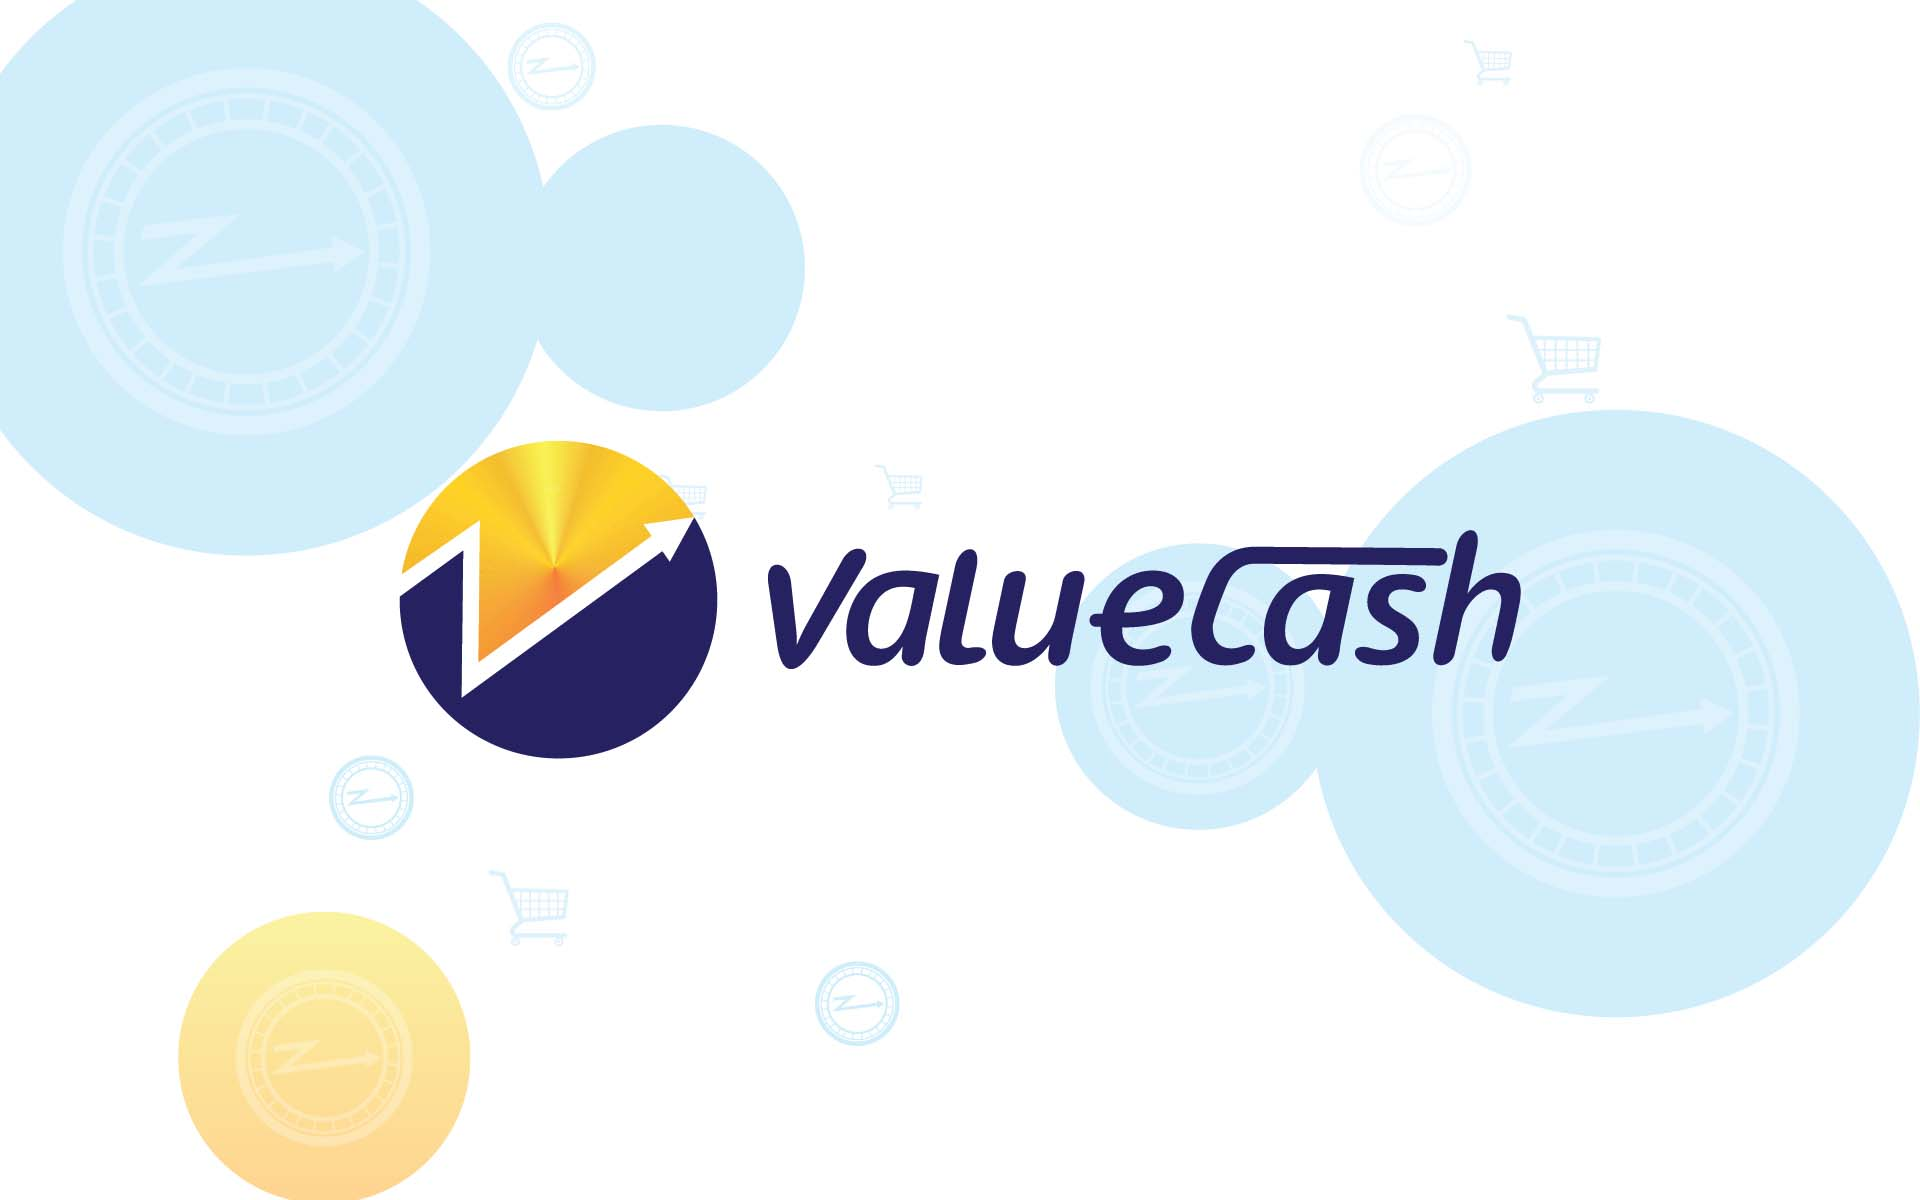 ValueCash Launches ICO Backed By Decentralized & Self-Governing Blockchain That Allows Users To Earn Tokens While Using Crypto To Pay For Goods & Services